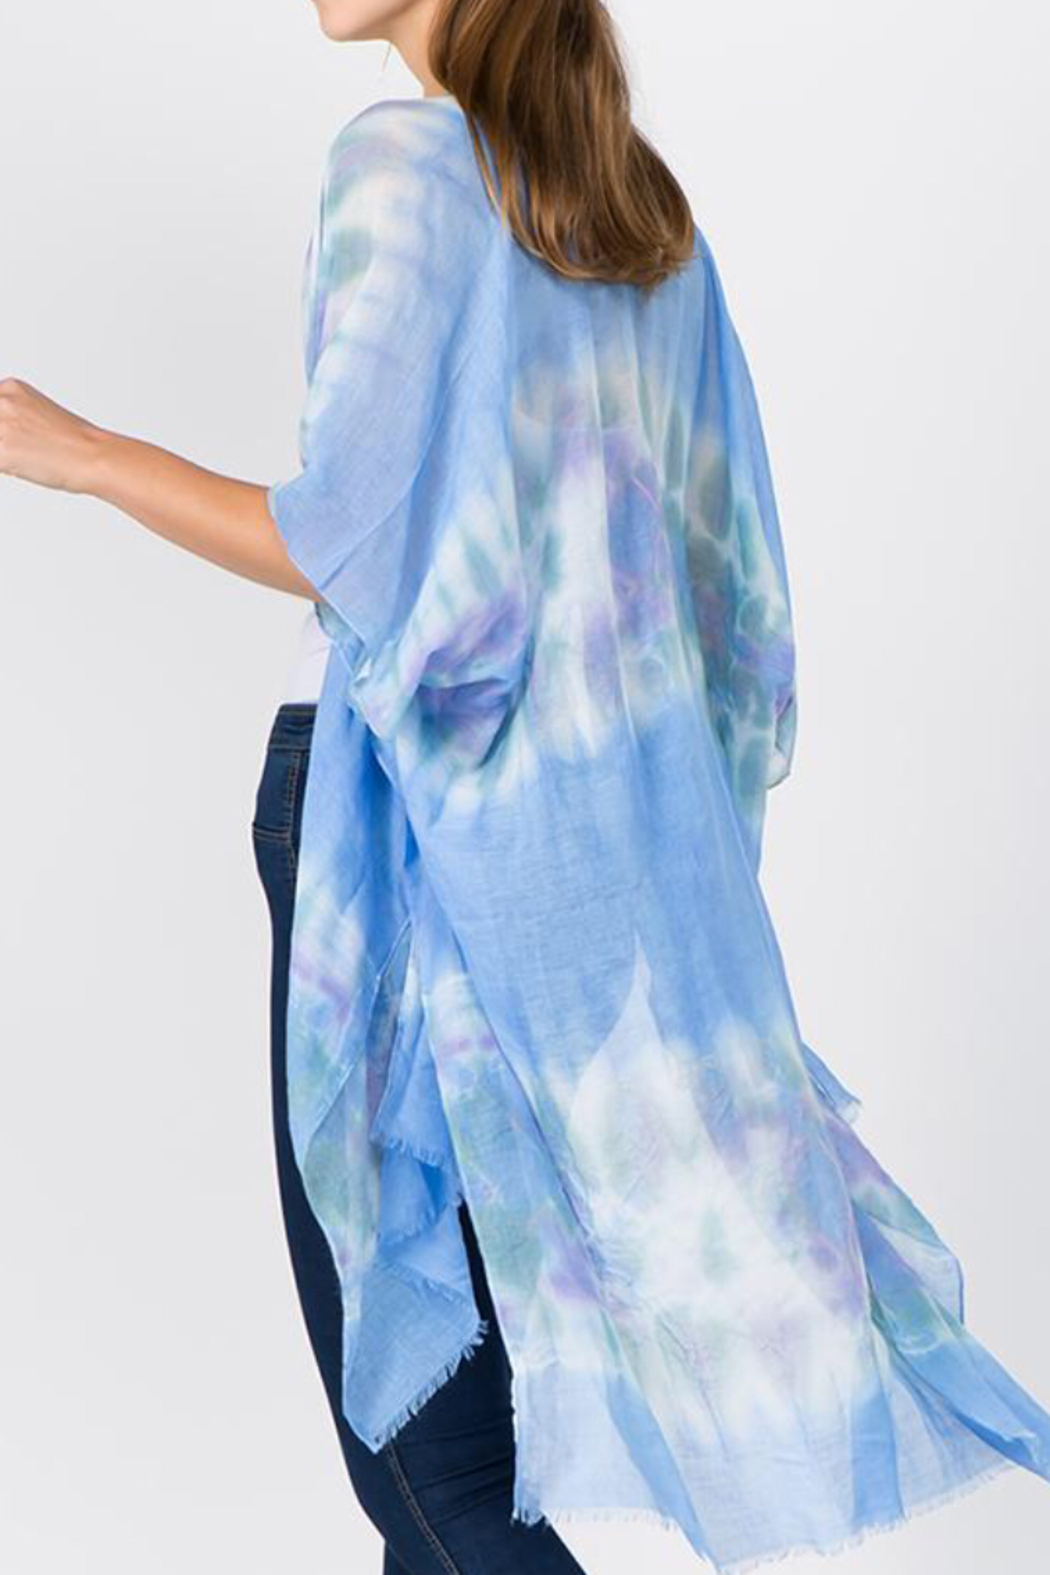 L.I.B. New York Tie-Dye Kimono/Cover Up - Side Cropped Image